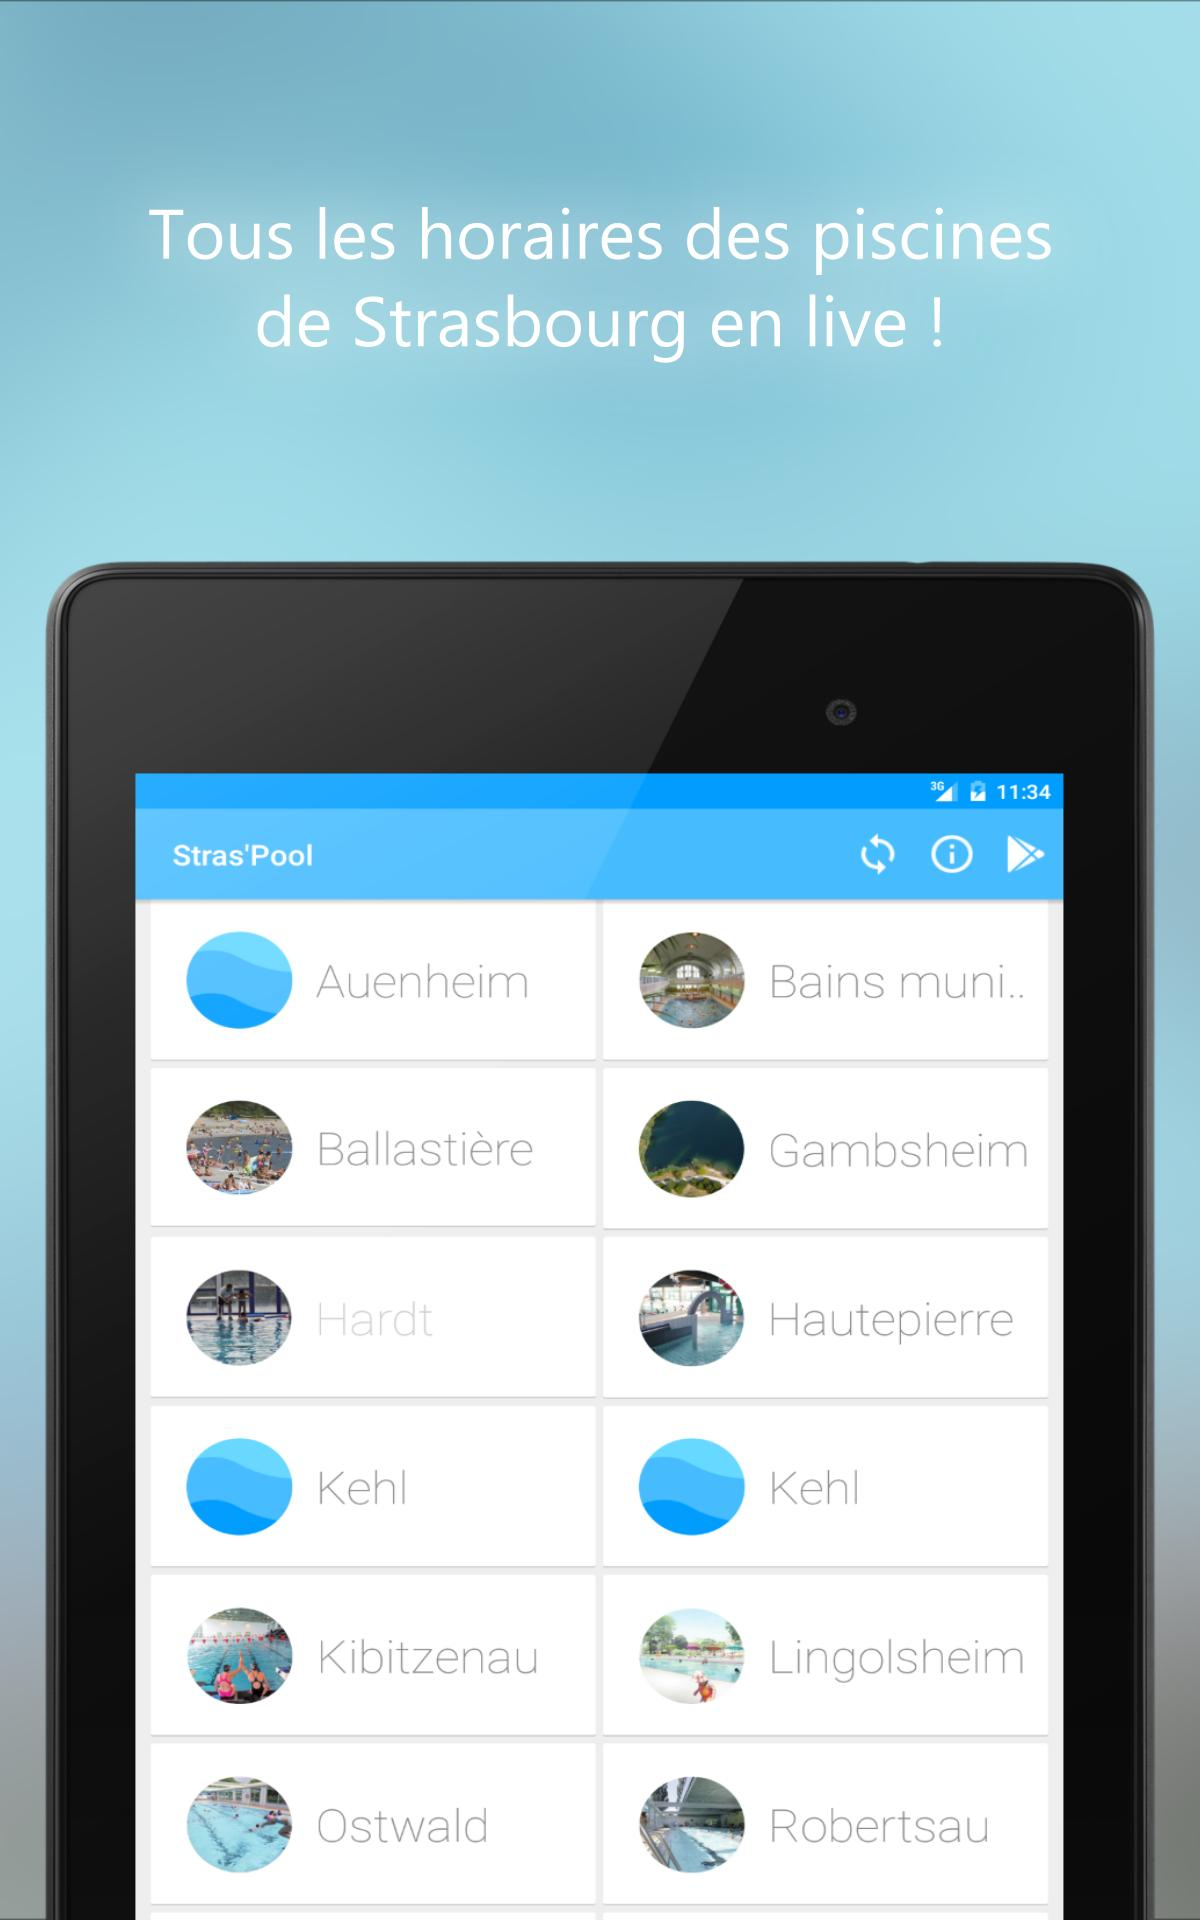 Stras'pool (Horaires Piscines) For Android - Apk Download dedans Piscine De La Hardt